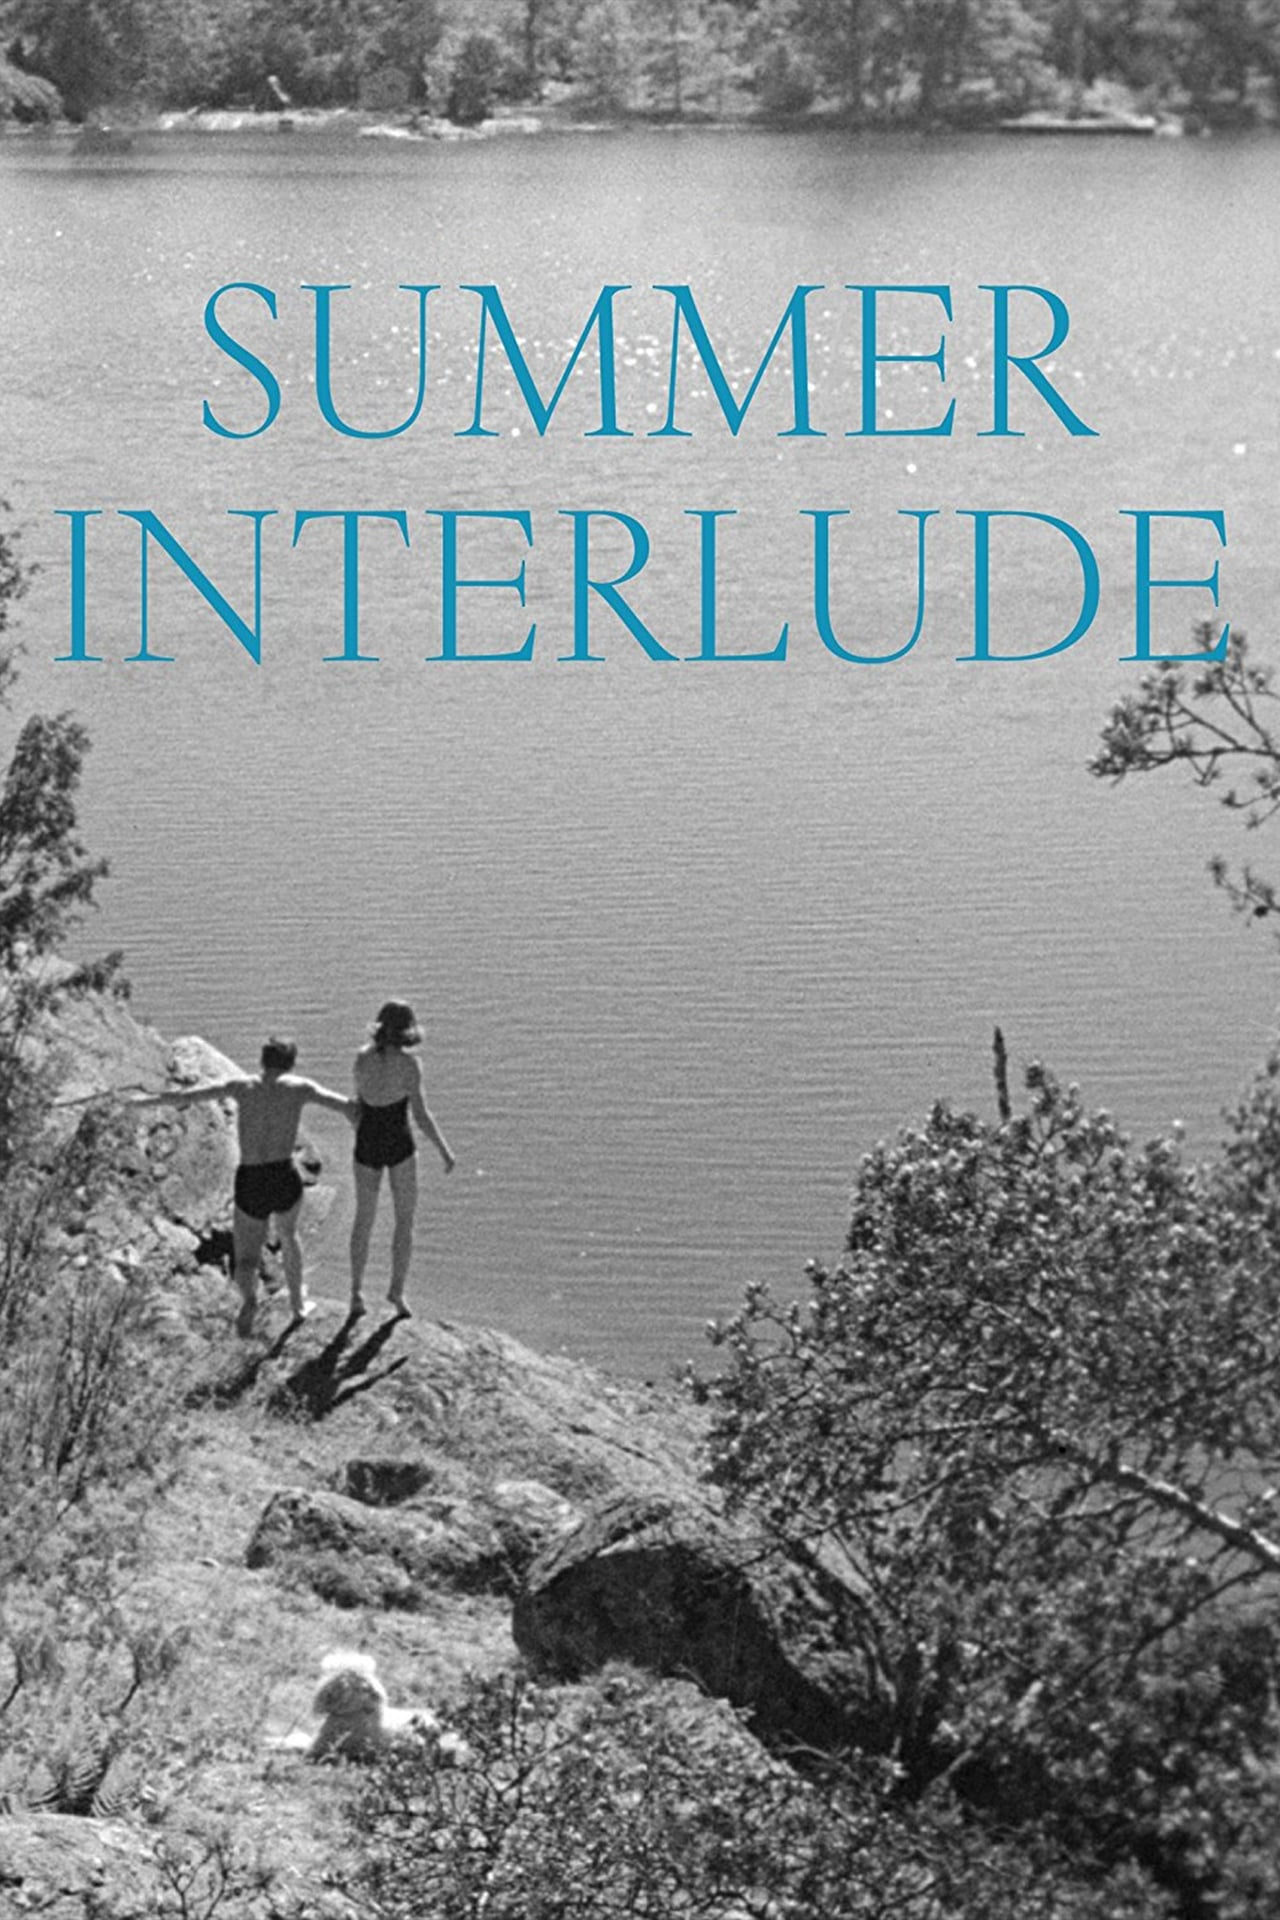 Summer Interlude